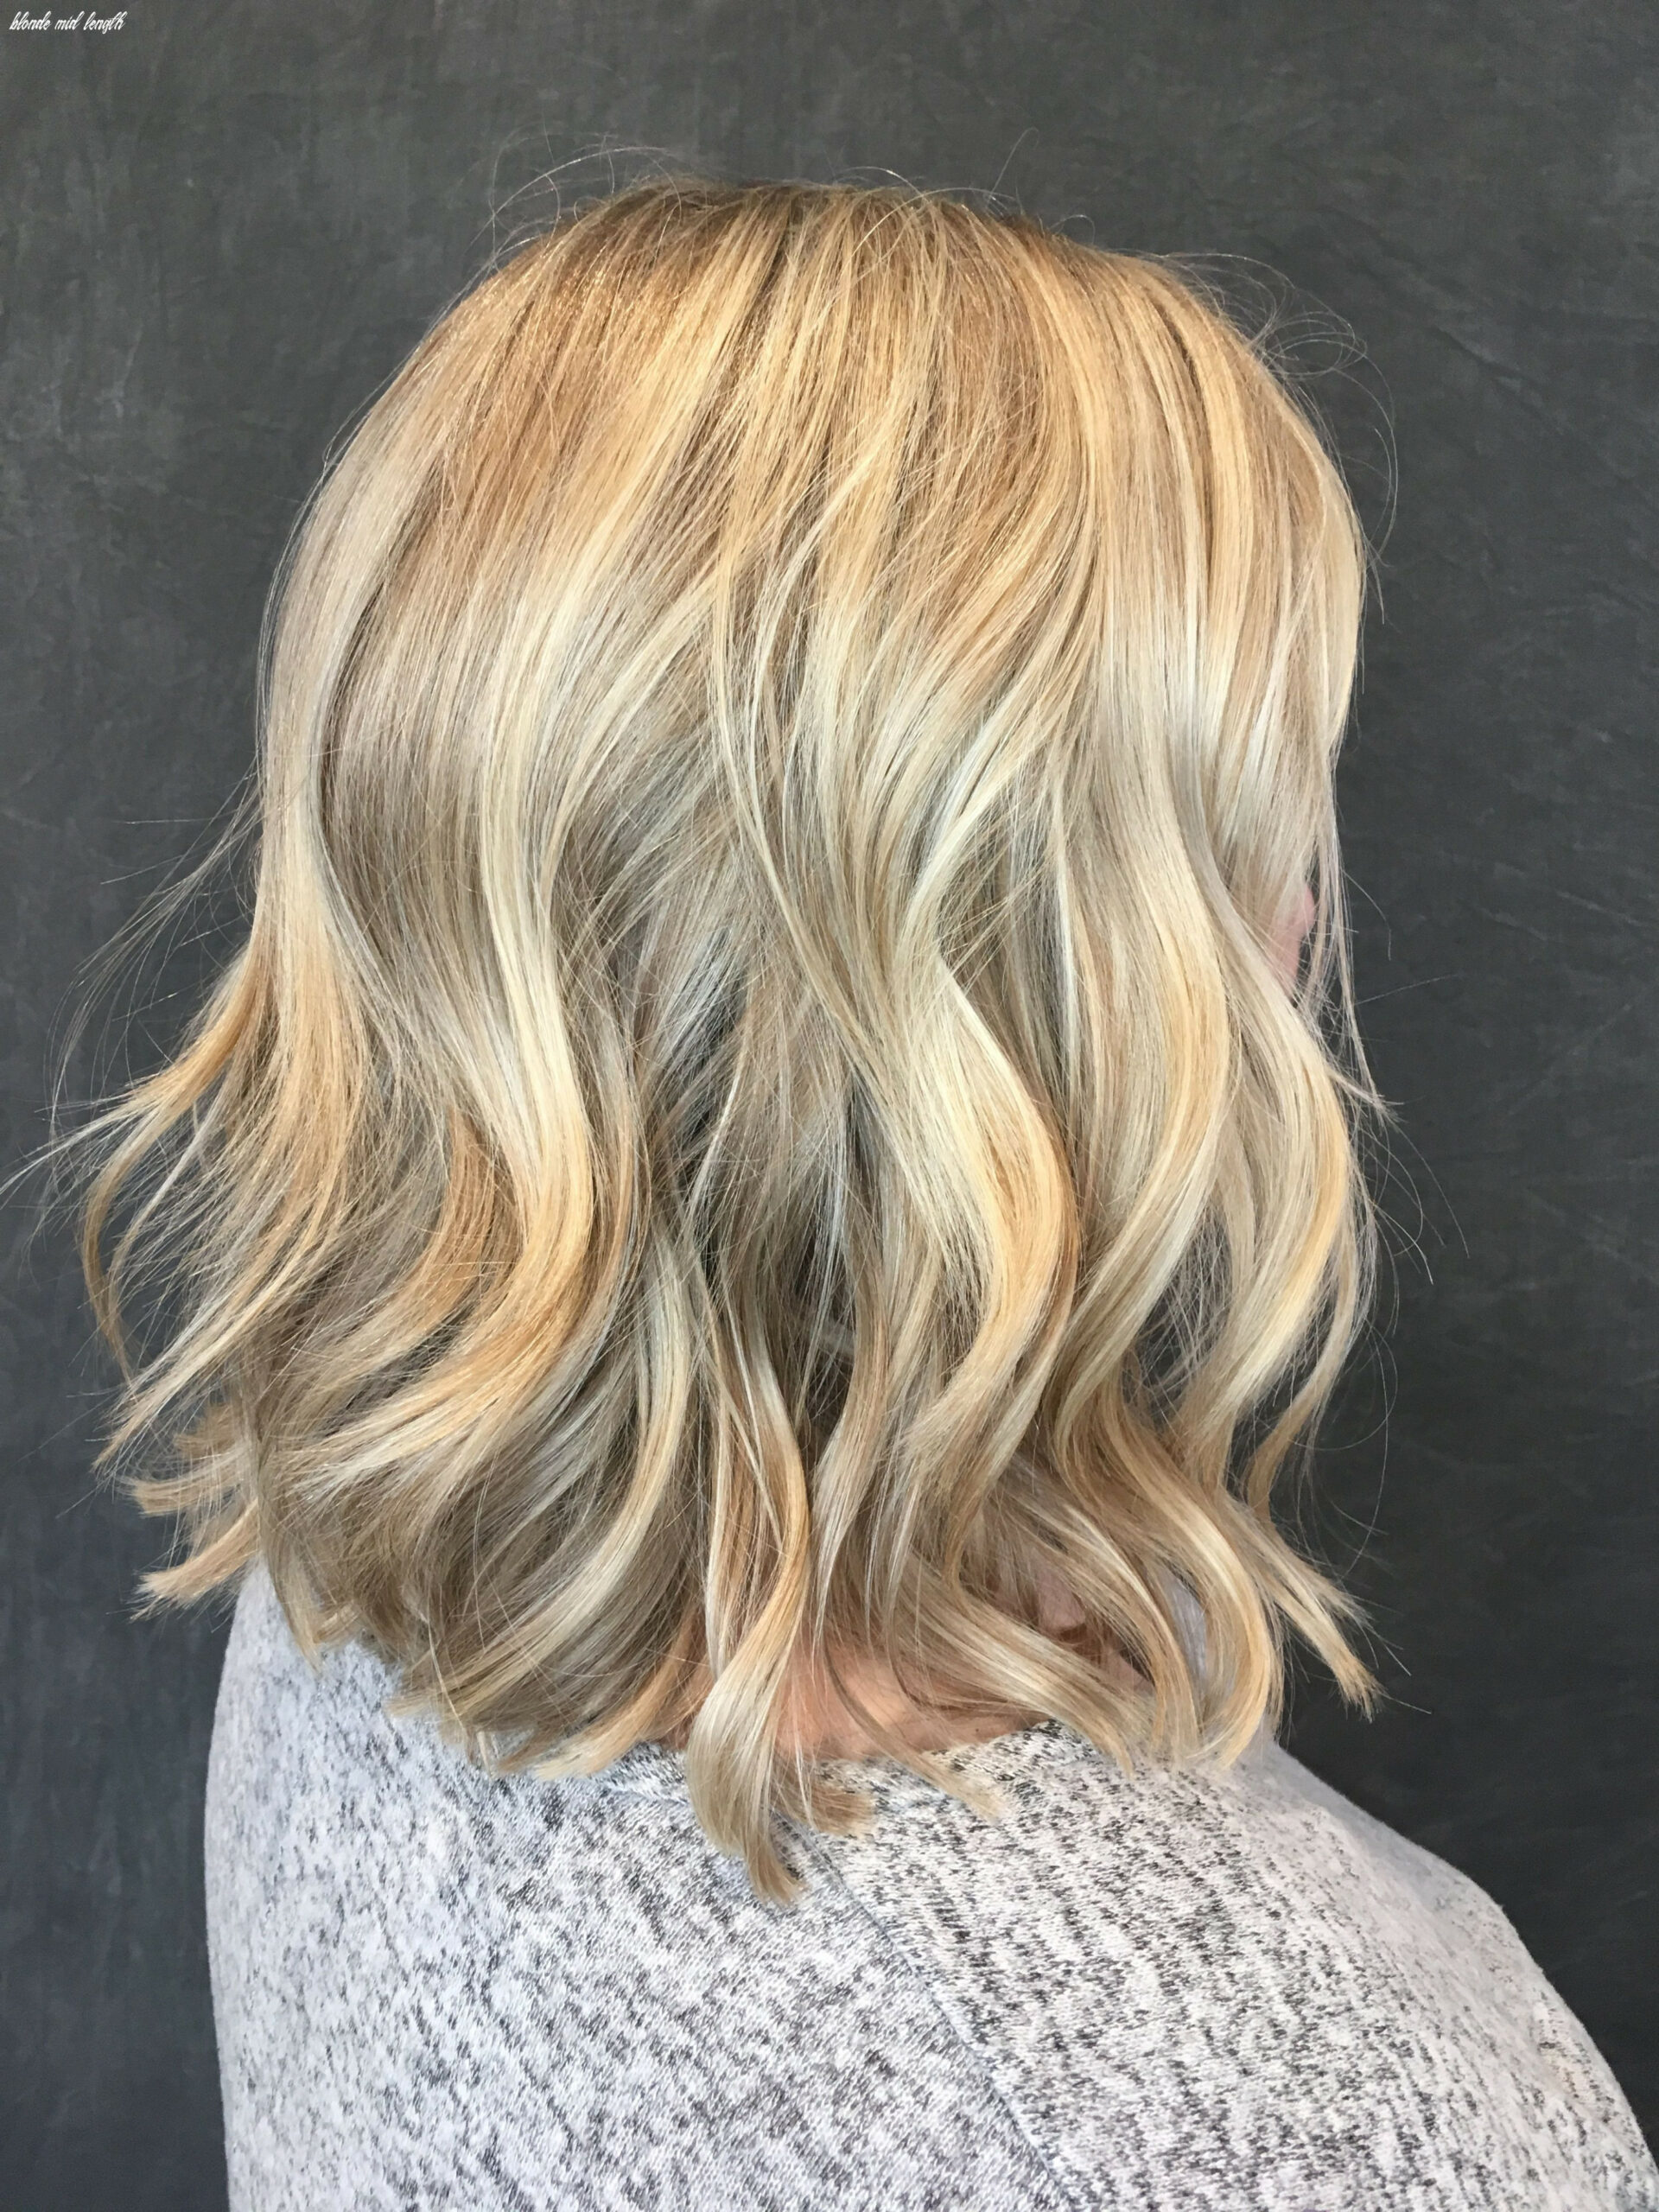 Blonde mid length #blondehair #livedinhair #shoulderlength | hair